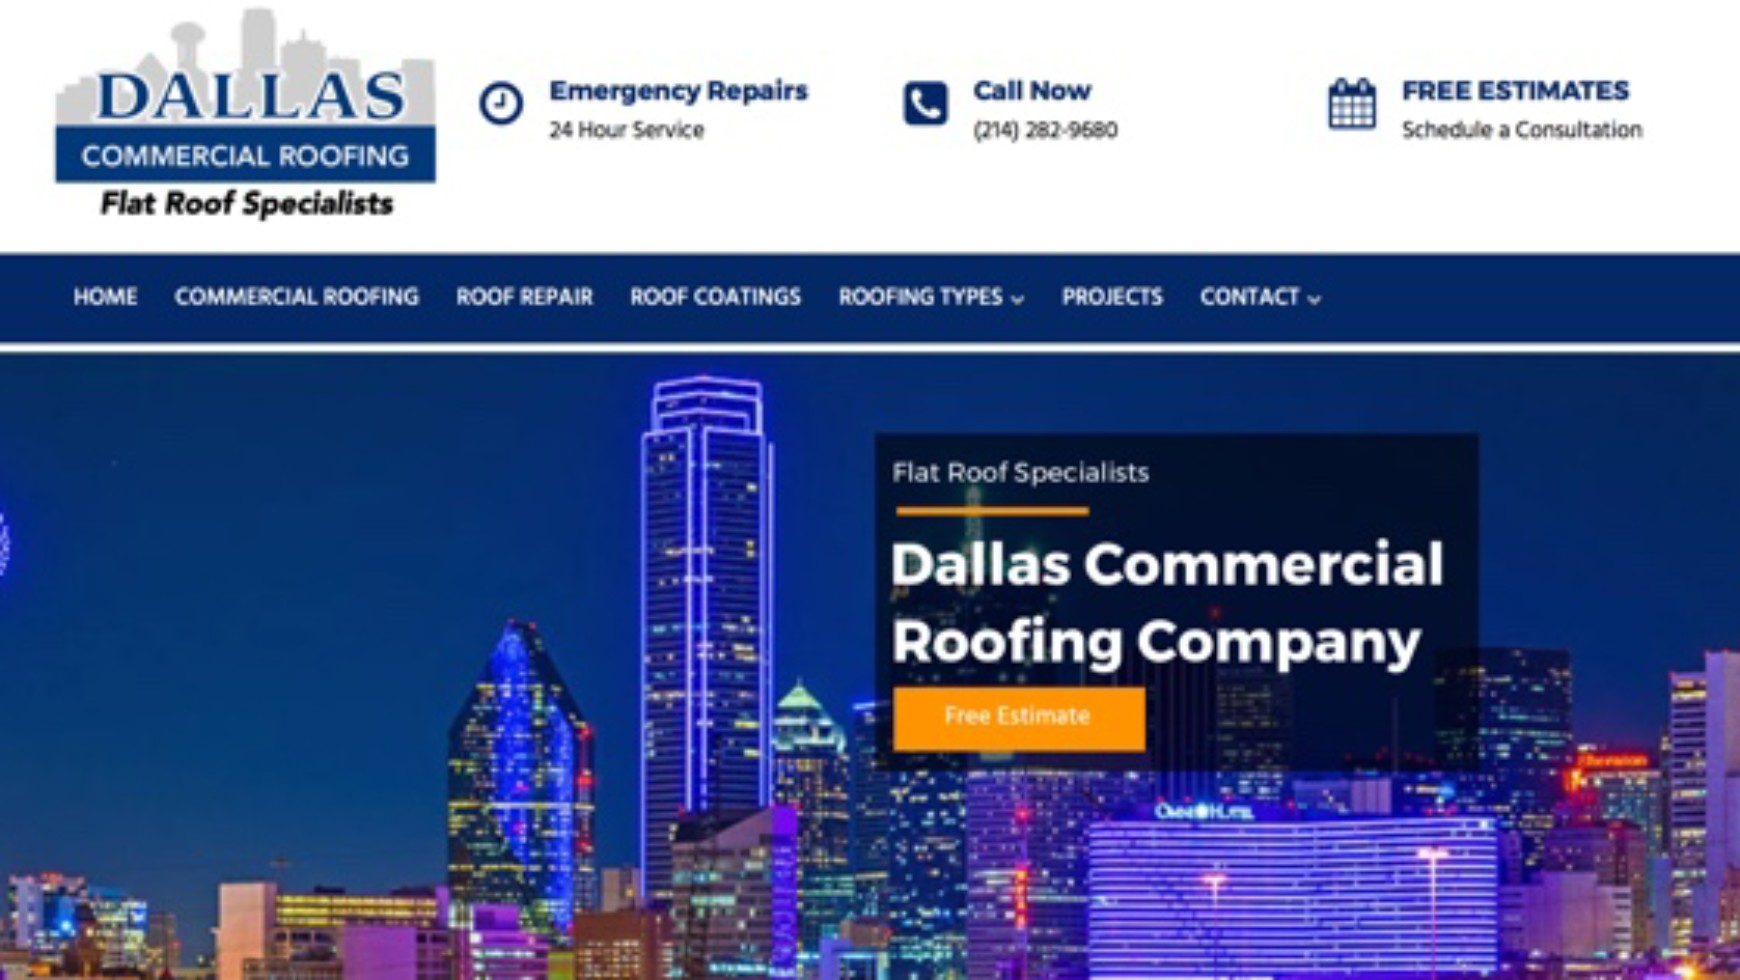 Dallas Commercial Roofing Company Website – Dallas, TX